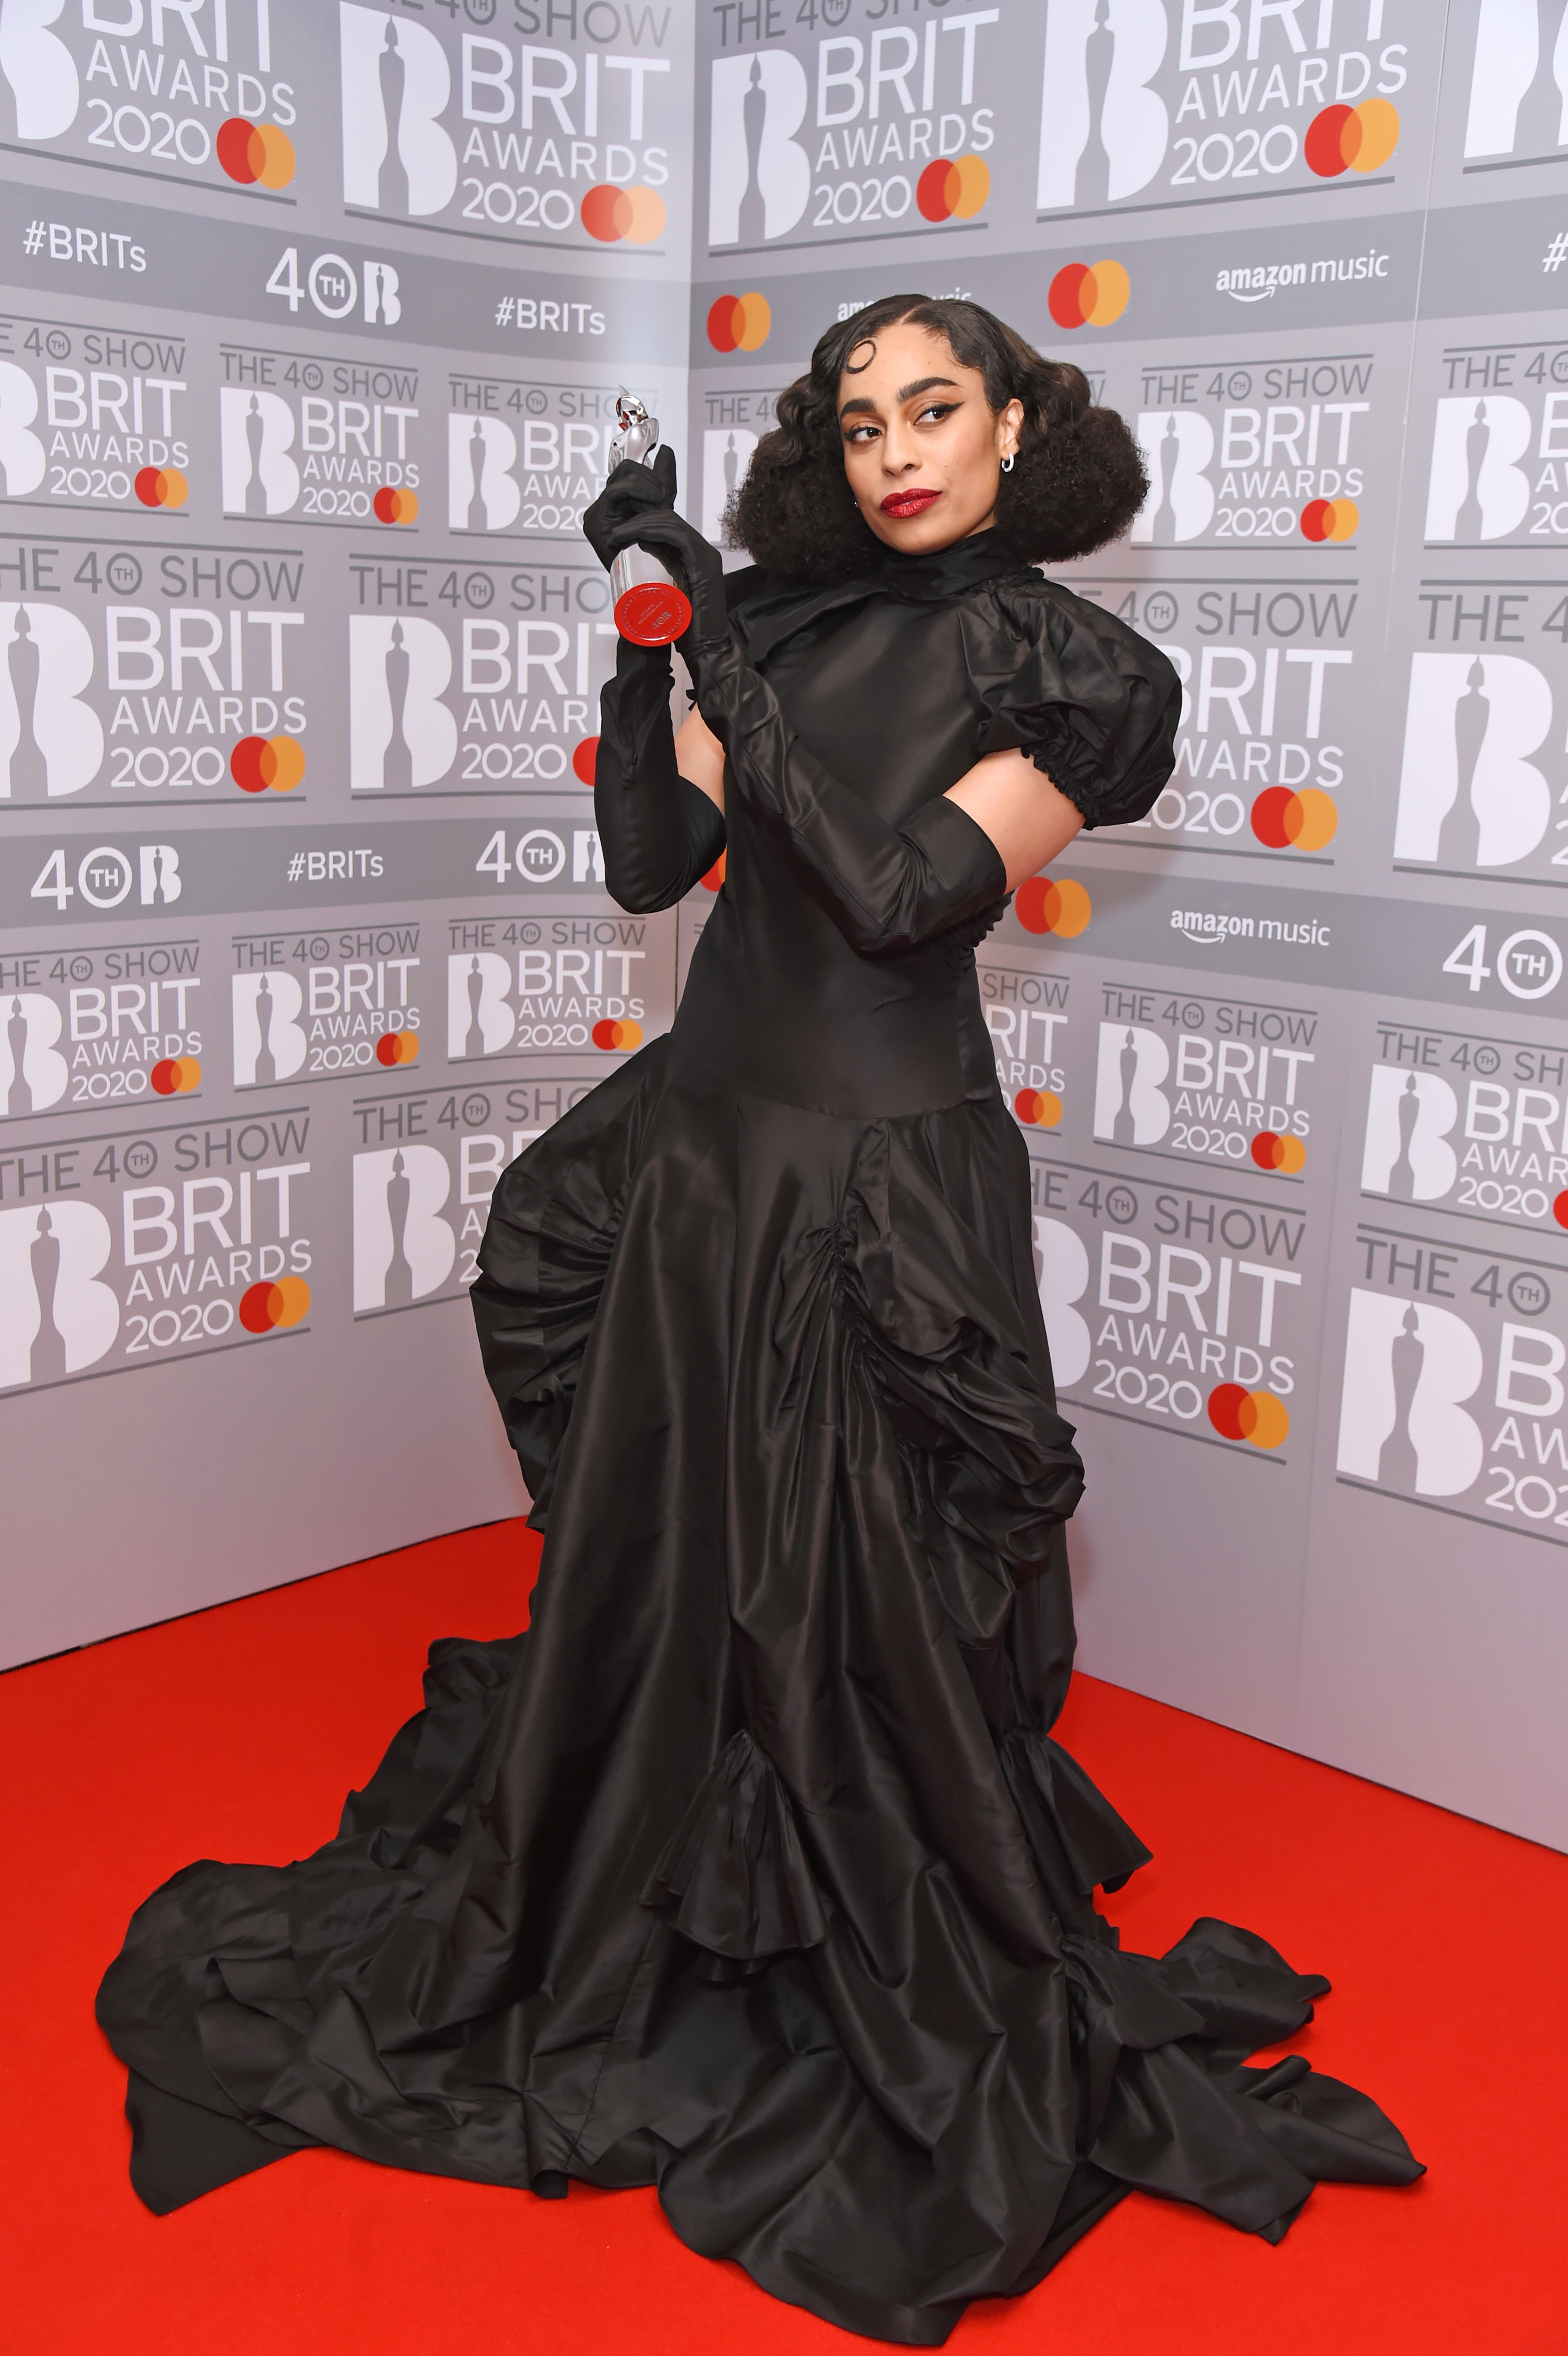 Celeste, winner of the Rising Star award, poses in the winners room at The BRIT Awards 2020 at The O2 Arena on February 18, 2020 in London, England.  (Photo by David M. Benett/Dave Benett/Getty Images)